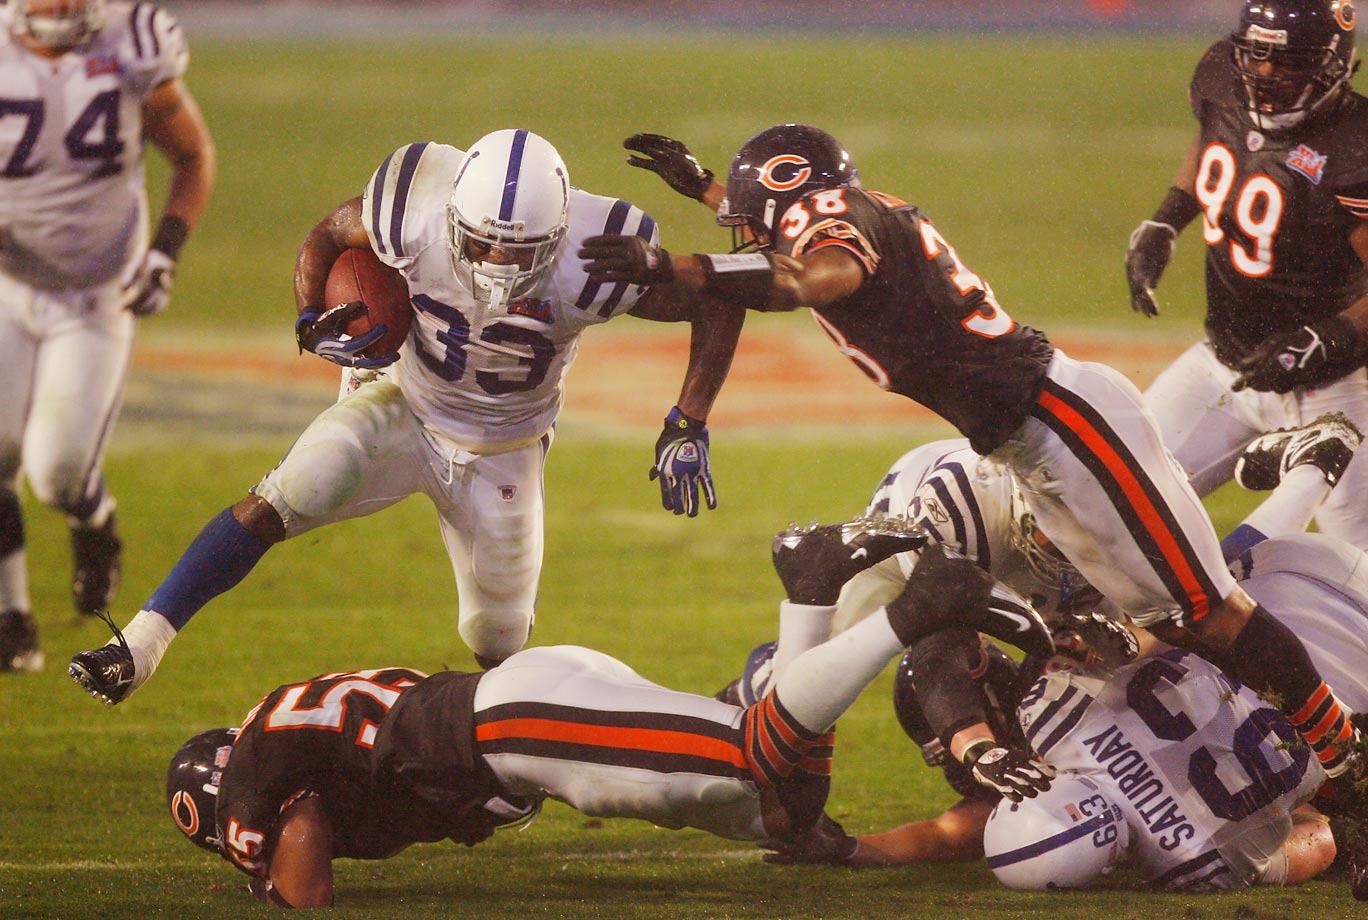 Dominic Rhodes ran for 113 yards and a touchdown to help the Colts win their only Super Bowl.